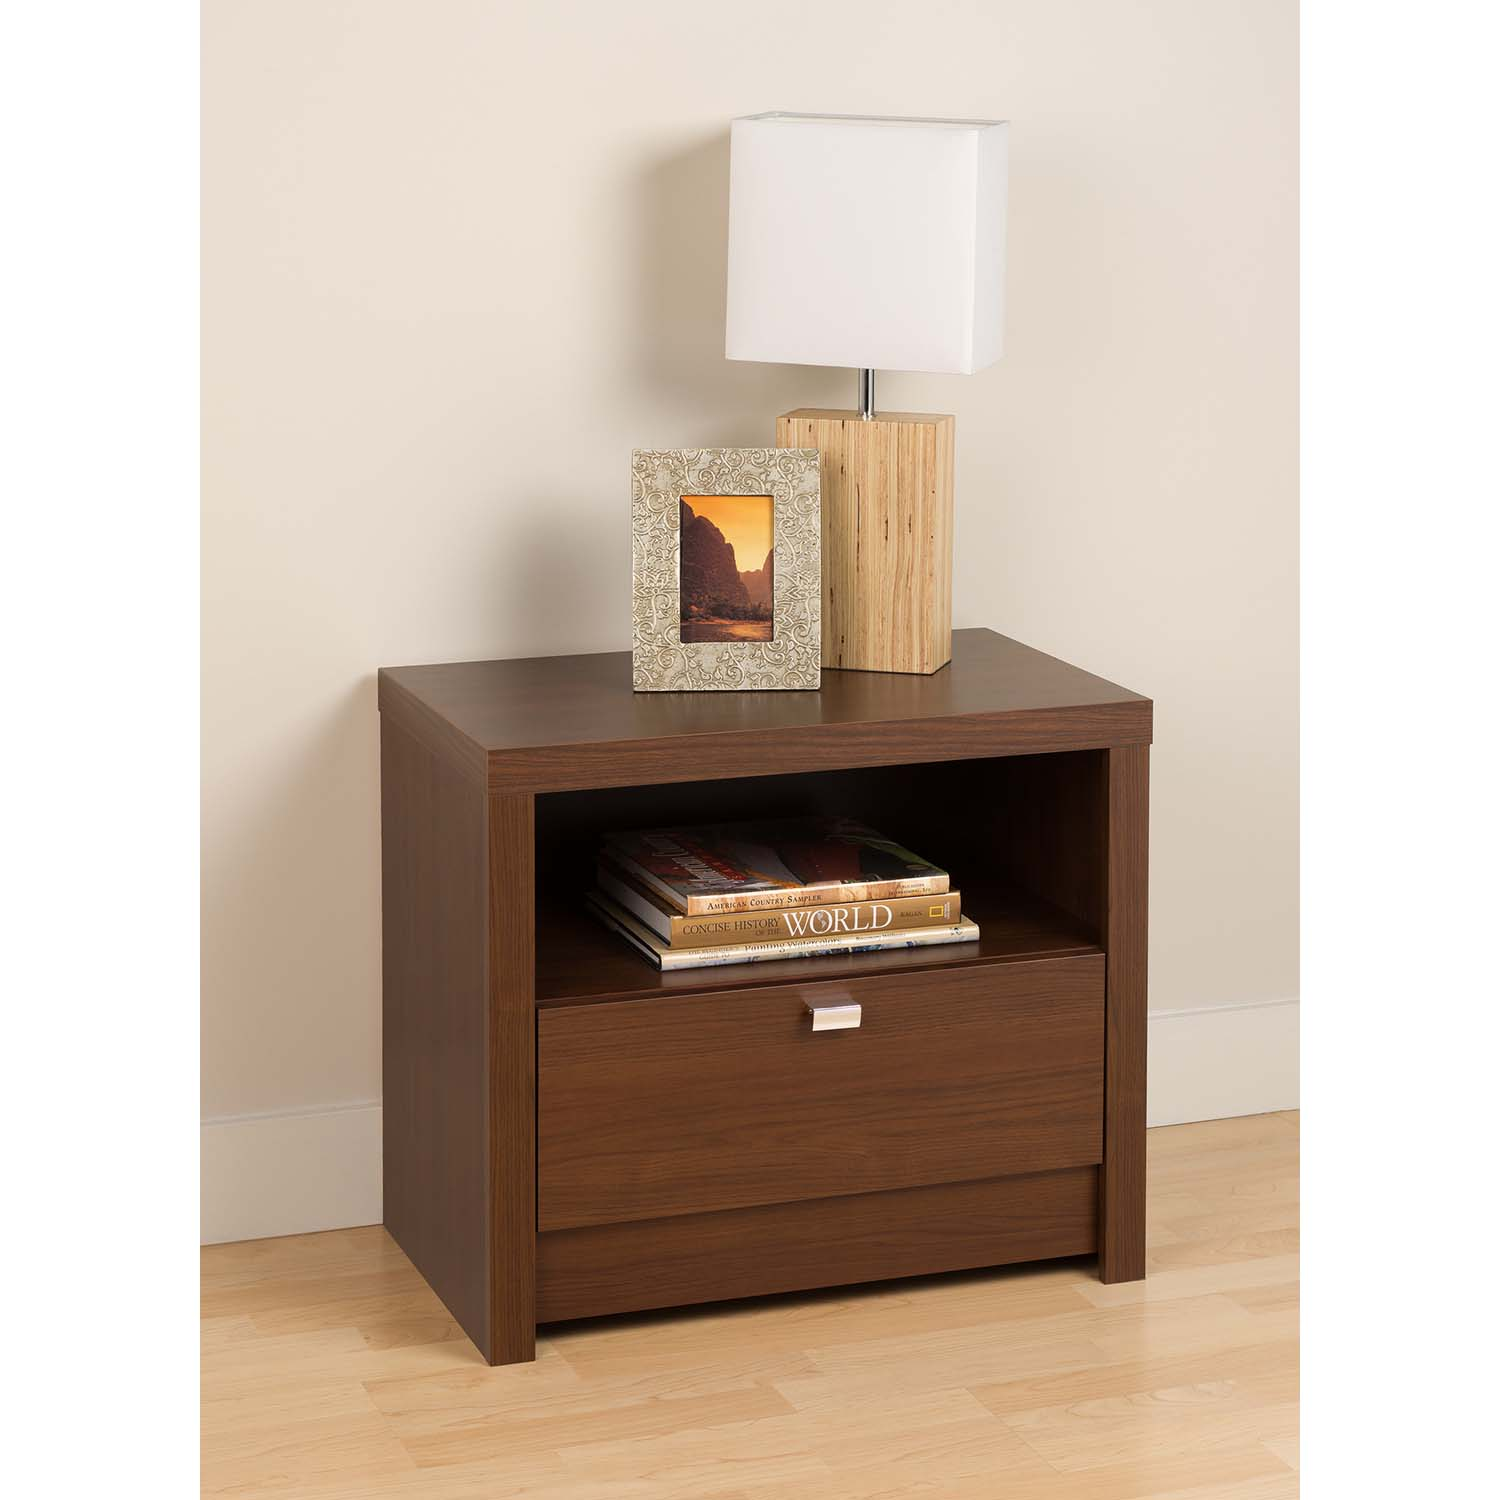 Series 9 Designer 1-Drawer Nightstand - Warm Cherry